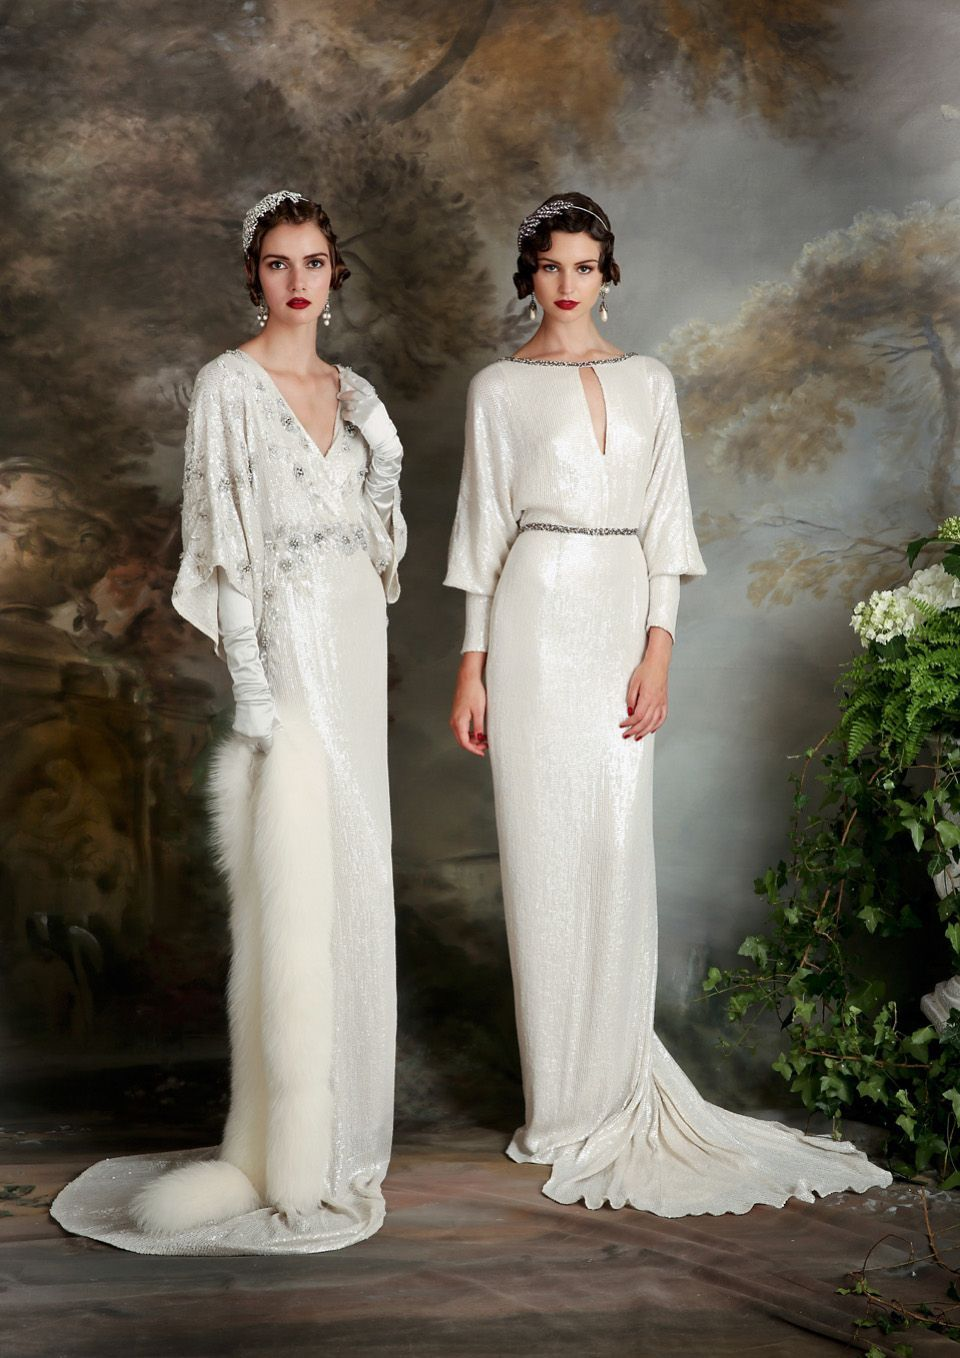 My wedding my dress  Eliza Jane Howell  Elegant Art Deco Inspired Wedding Dresses  Love